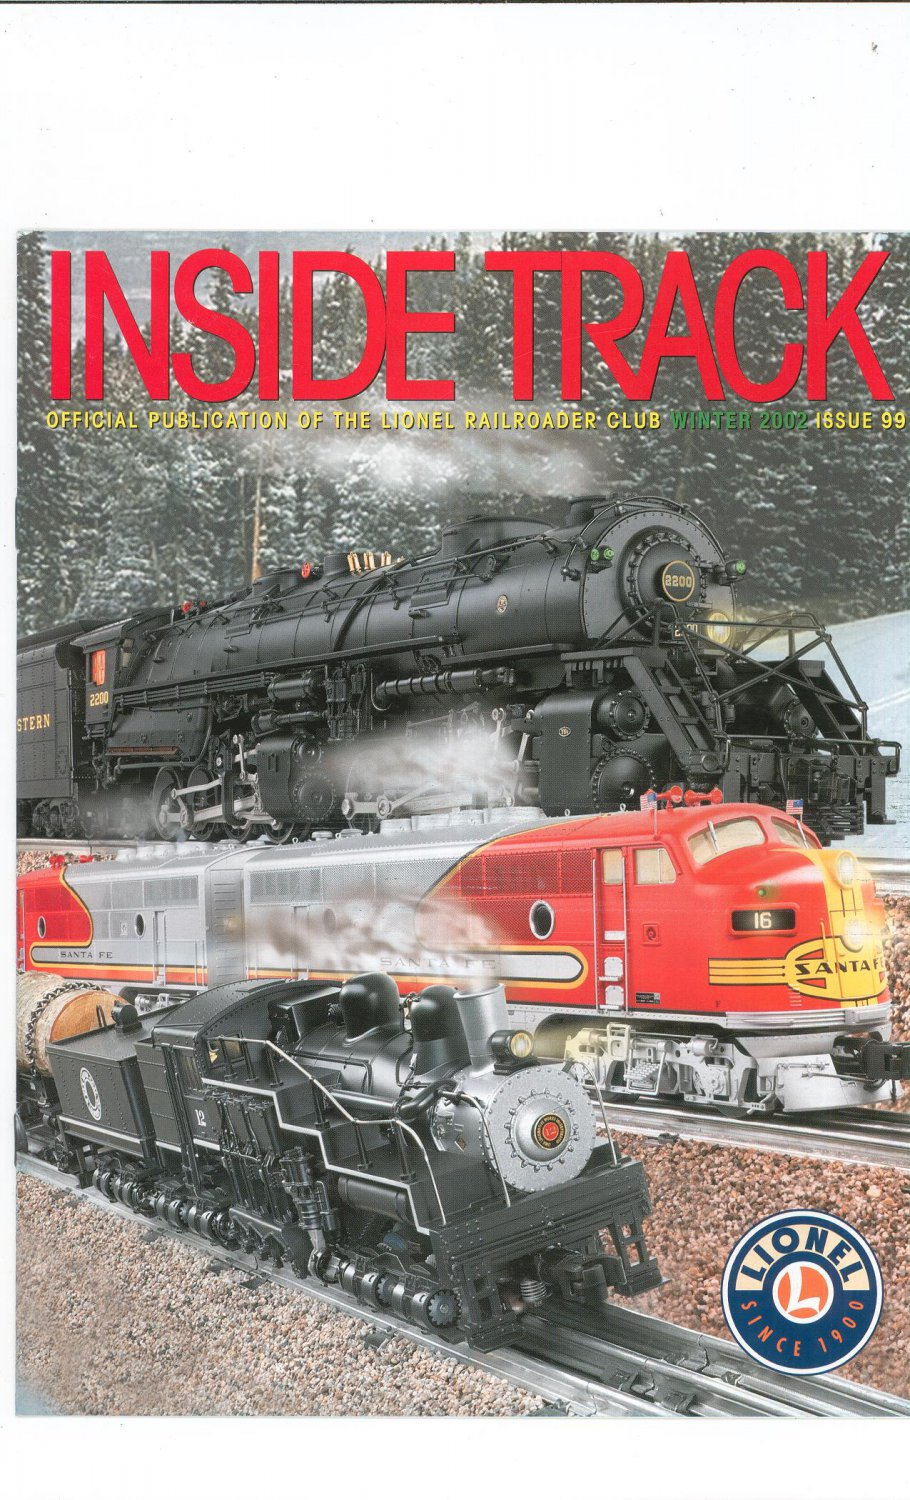 Lionel Railroader Club Inside Track Winter 2002 Issue 99